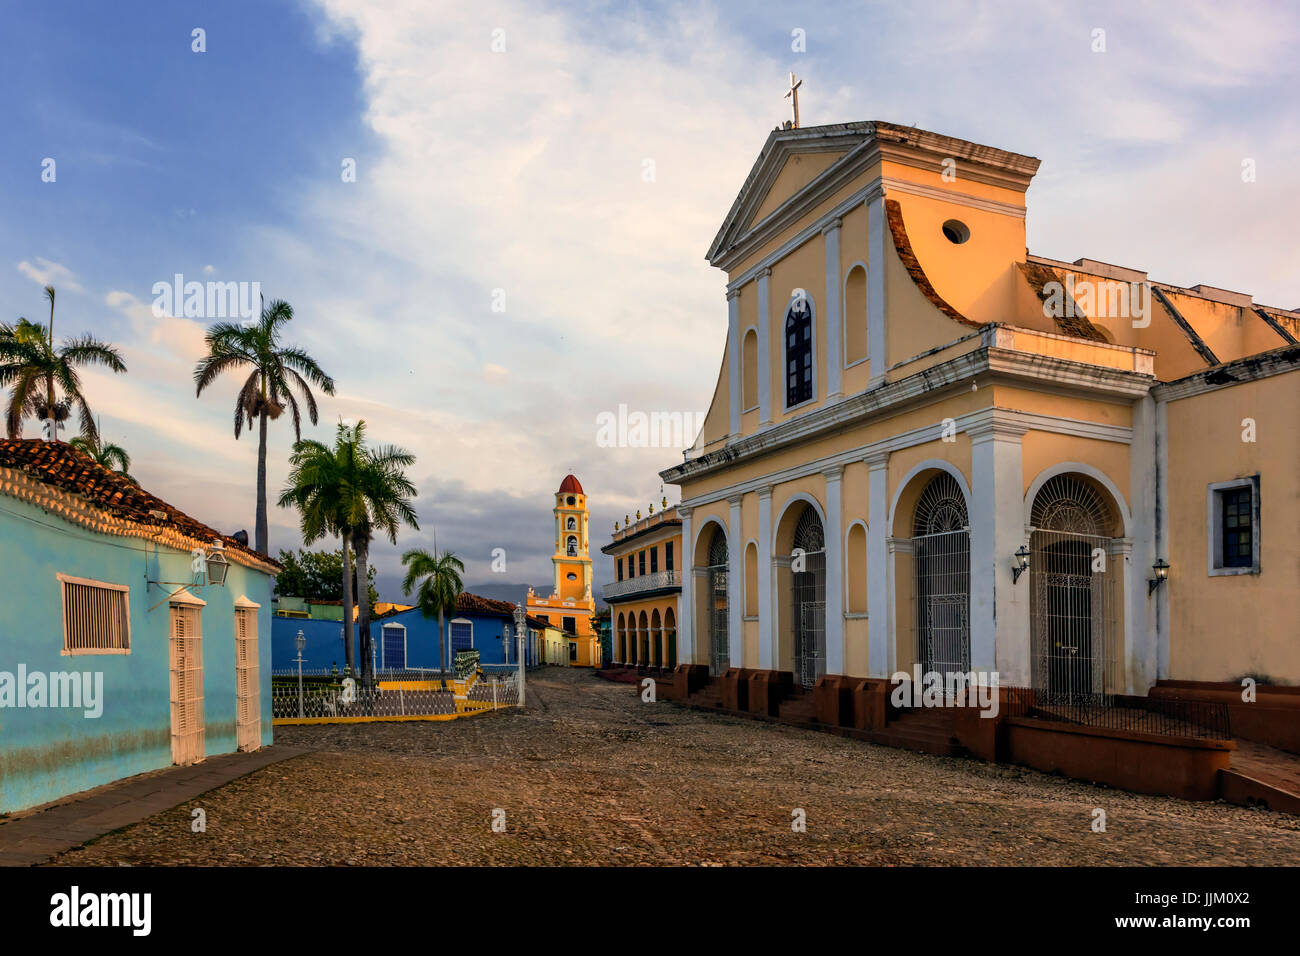 The IGLESIA PARROQUIAL DE LA SANTISIMA TRINIDAD is located on PLAZA MAYOR - TRINIDAD, CUBA Stock Photo